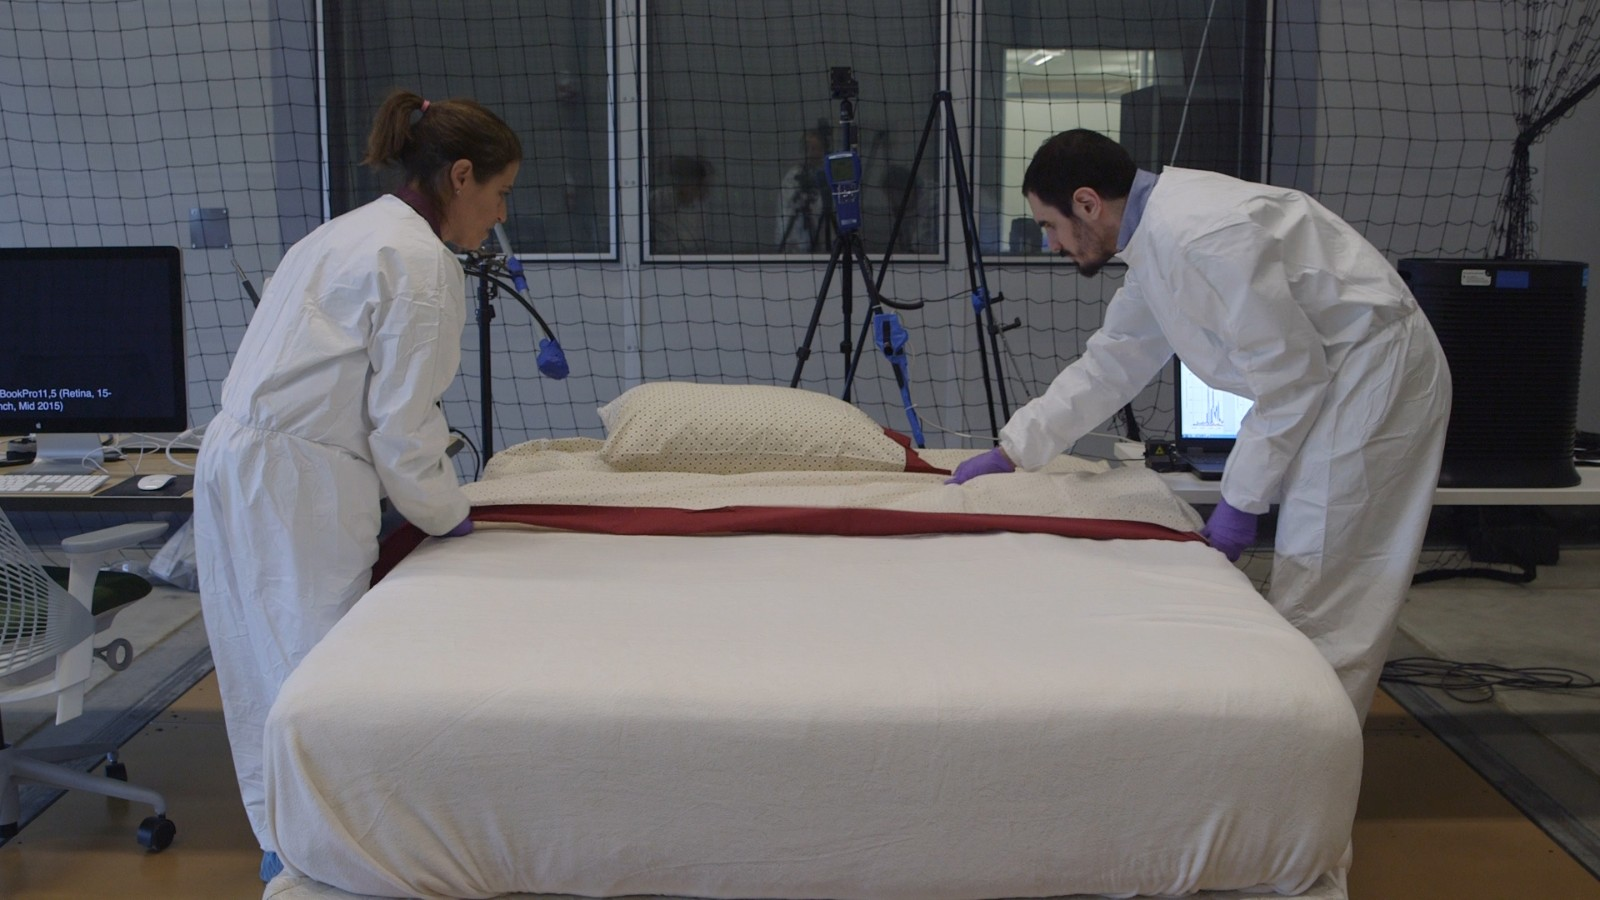 How Your Bed May Be Making You Sick